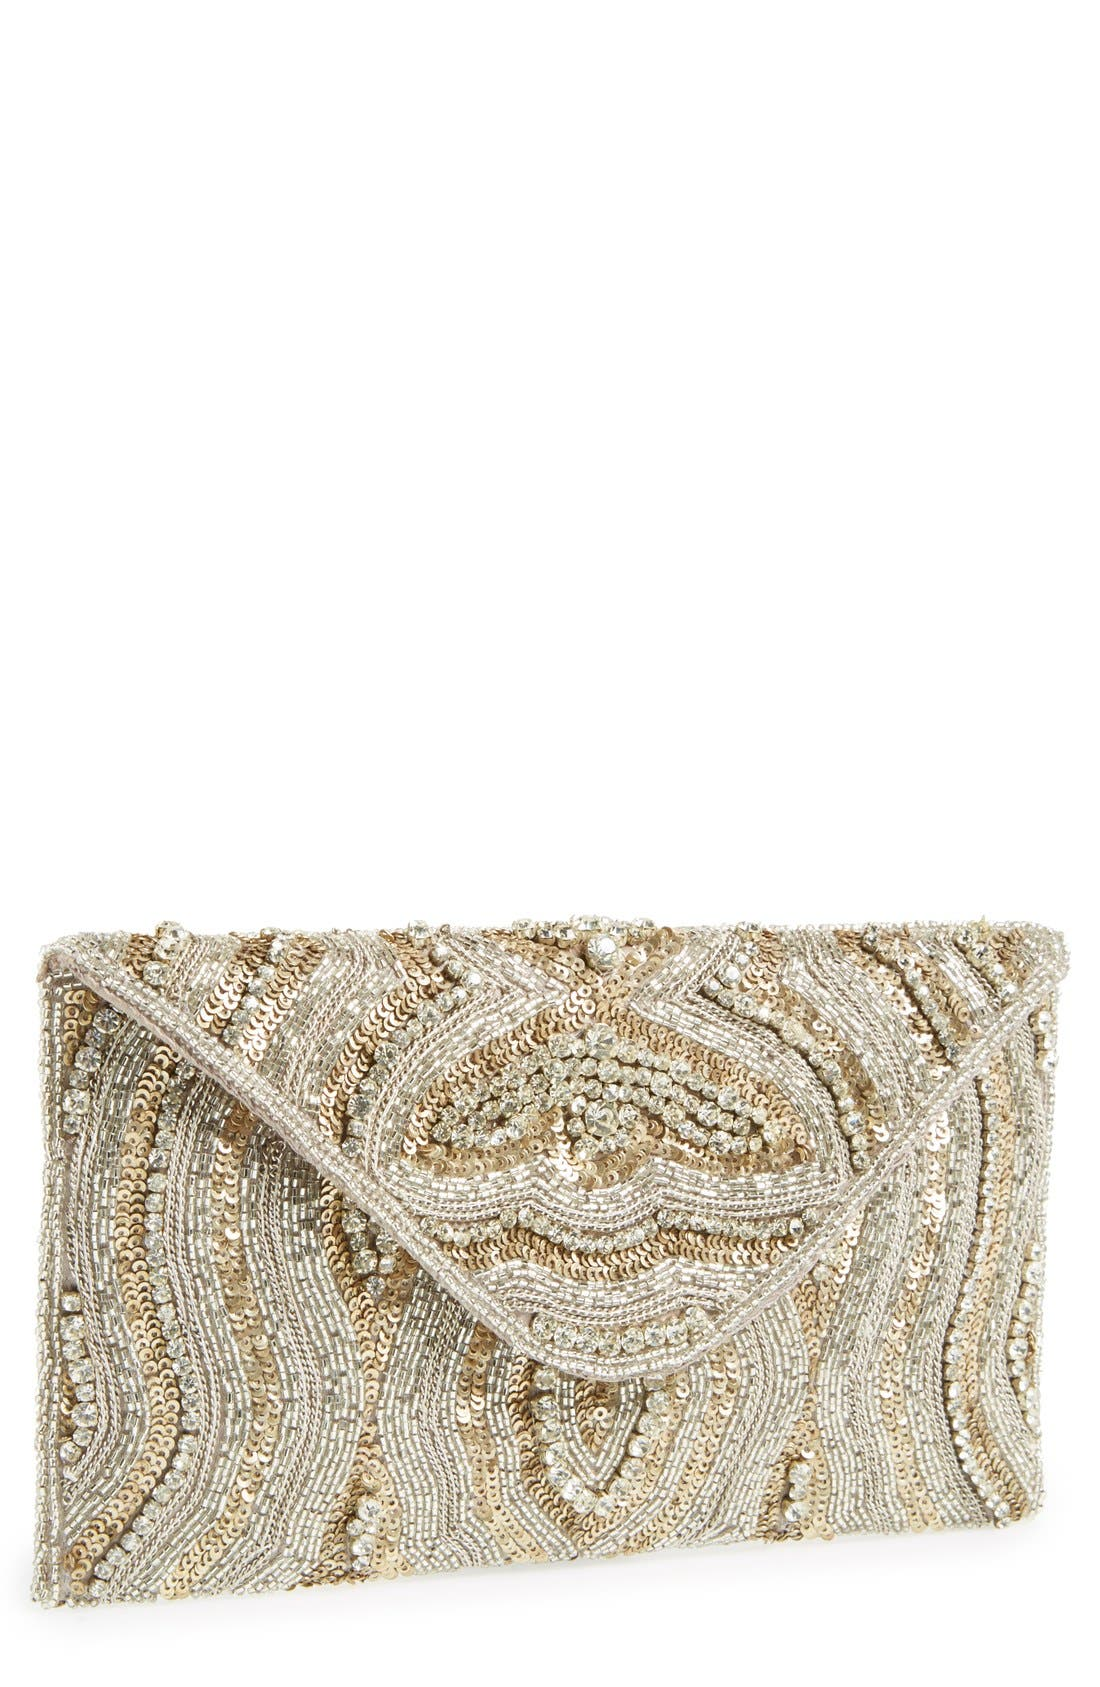 MICKY LONDON HANDBAGS,                             Beaded Envelope Clutch,                             Main thumbnail 1, color,                             040